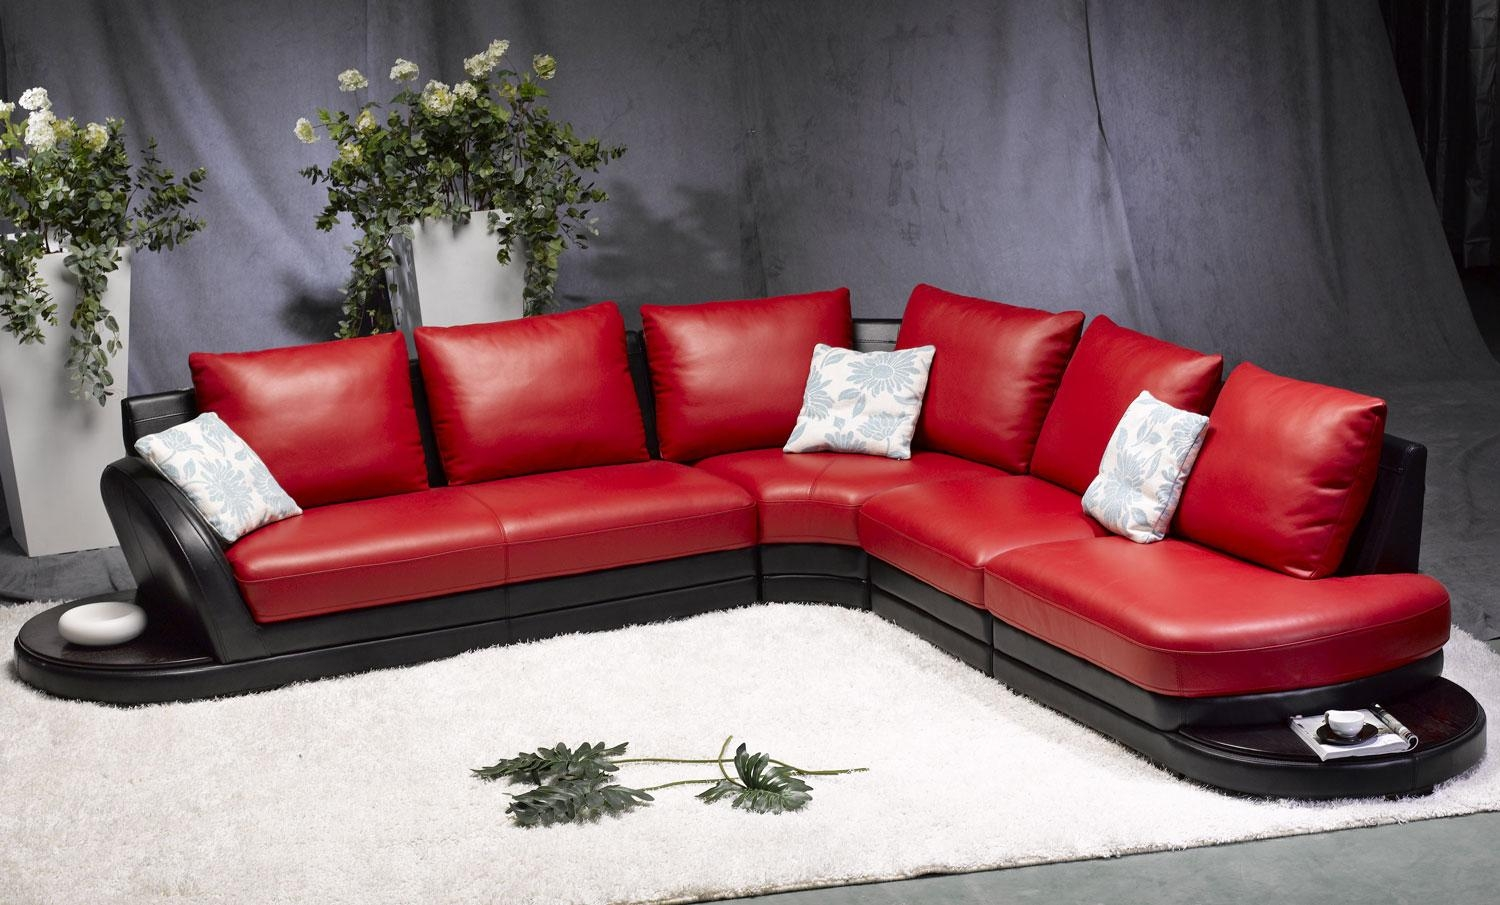 Tosh Furniture Modern Red/black Leather Sectional Sofa – Flap Stores Intended For Red Black Sectional Sofa (Image 20 of 20)